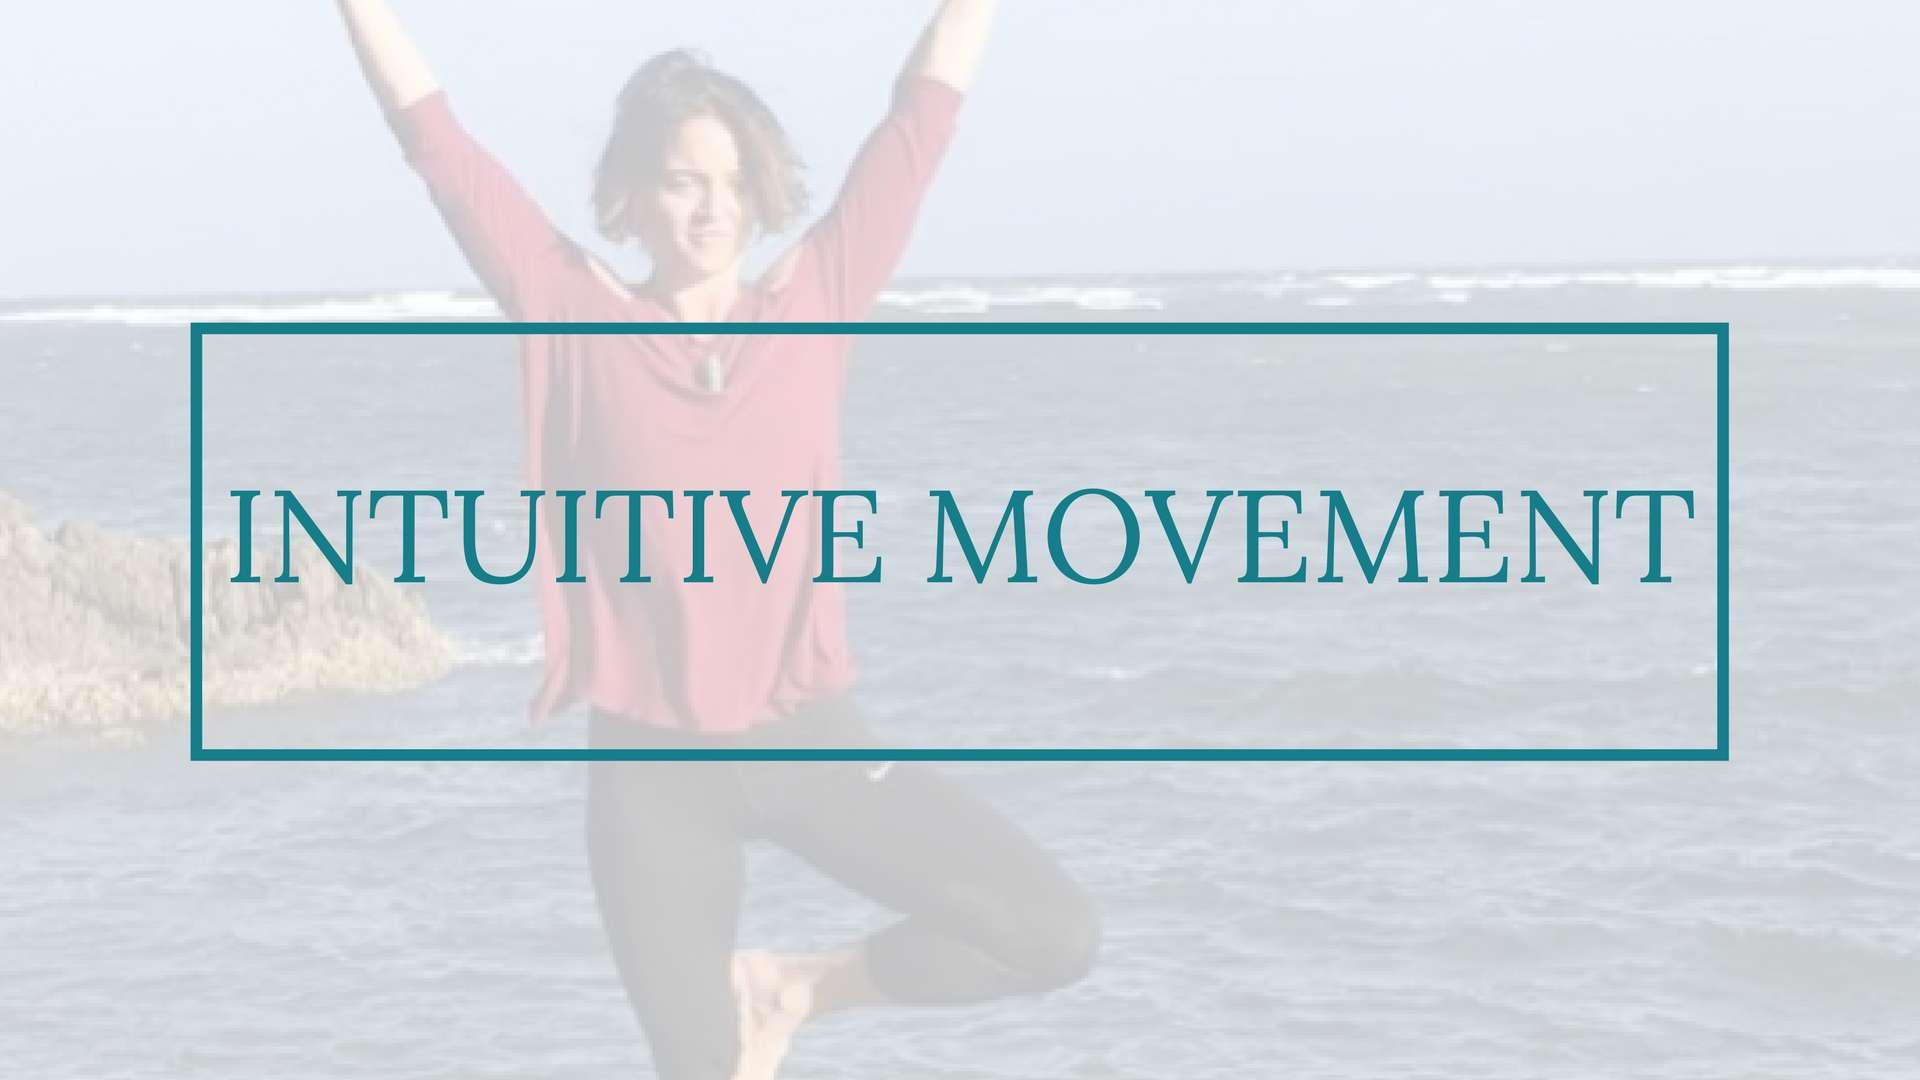 image of intuitive movement